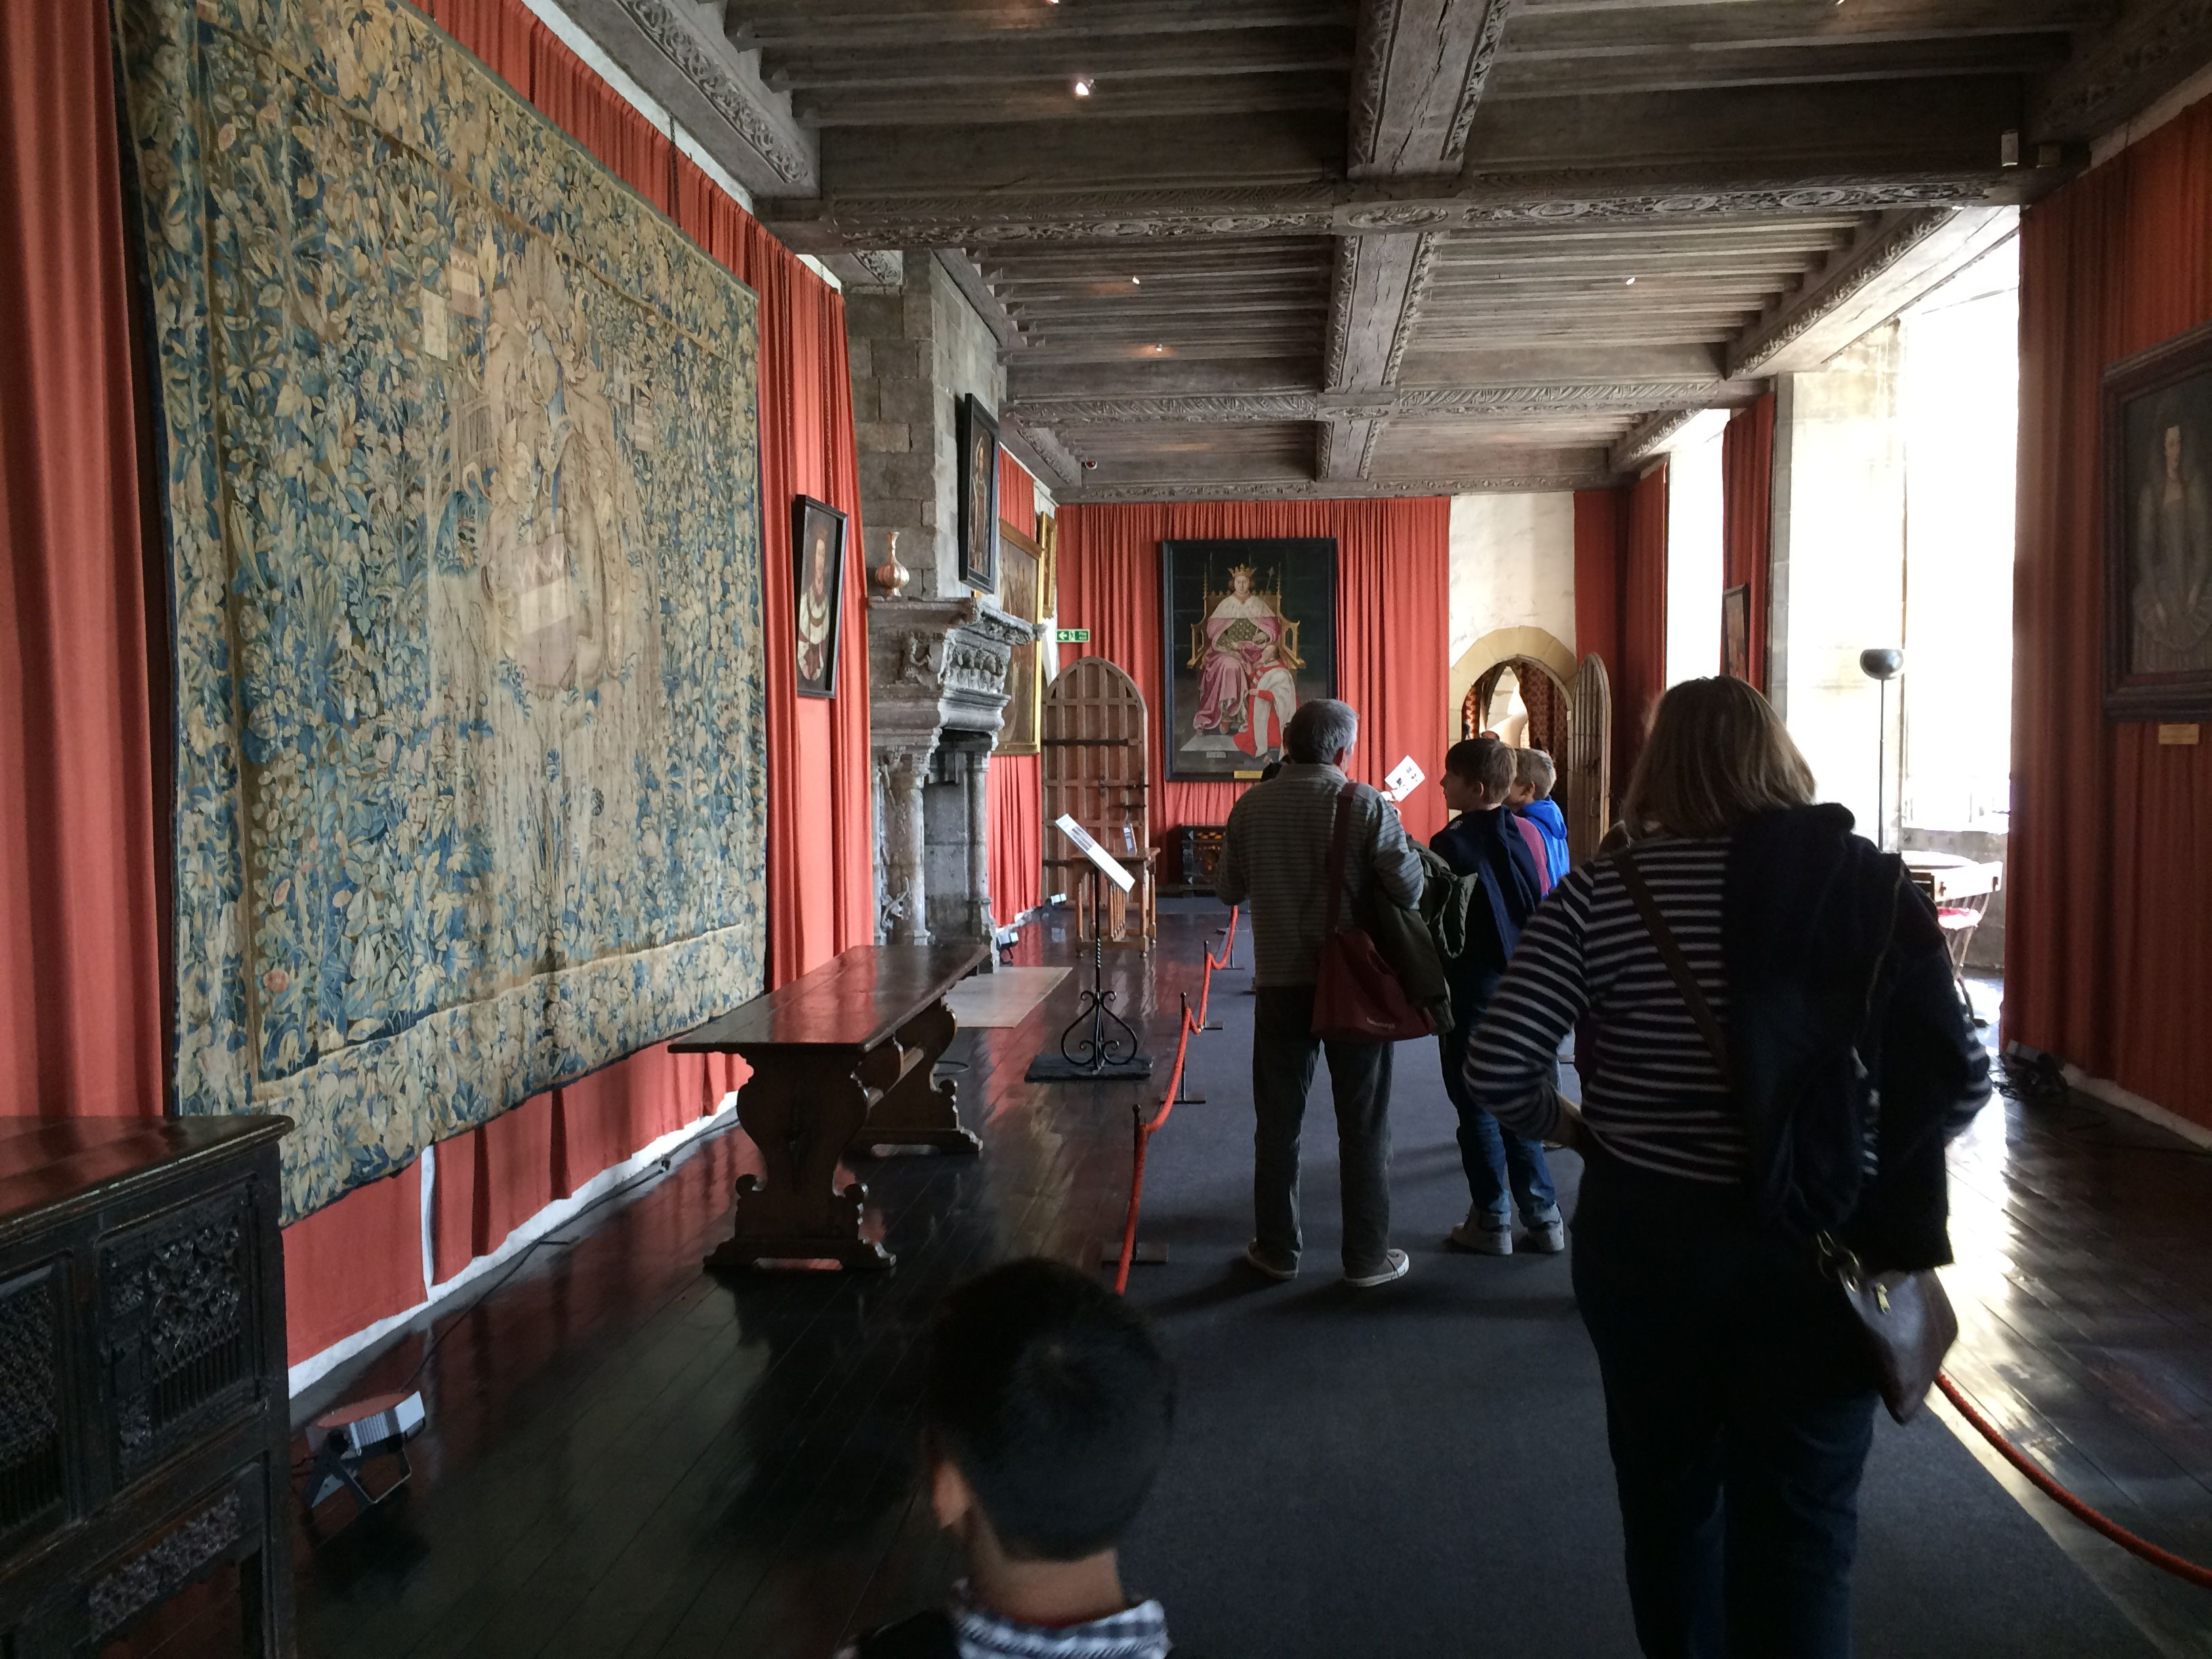 Henry VIII's Banqueting Hall